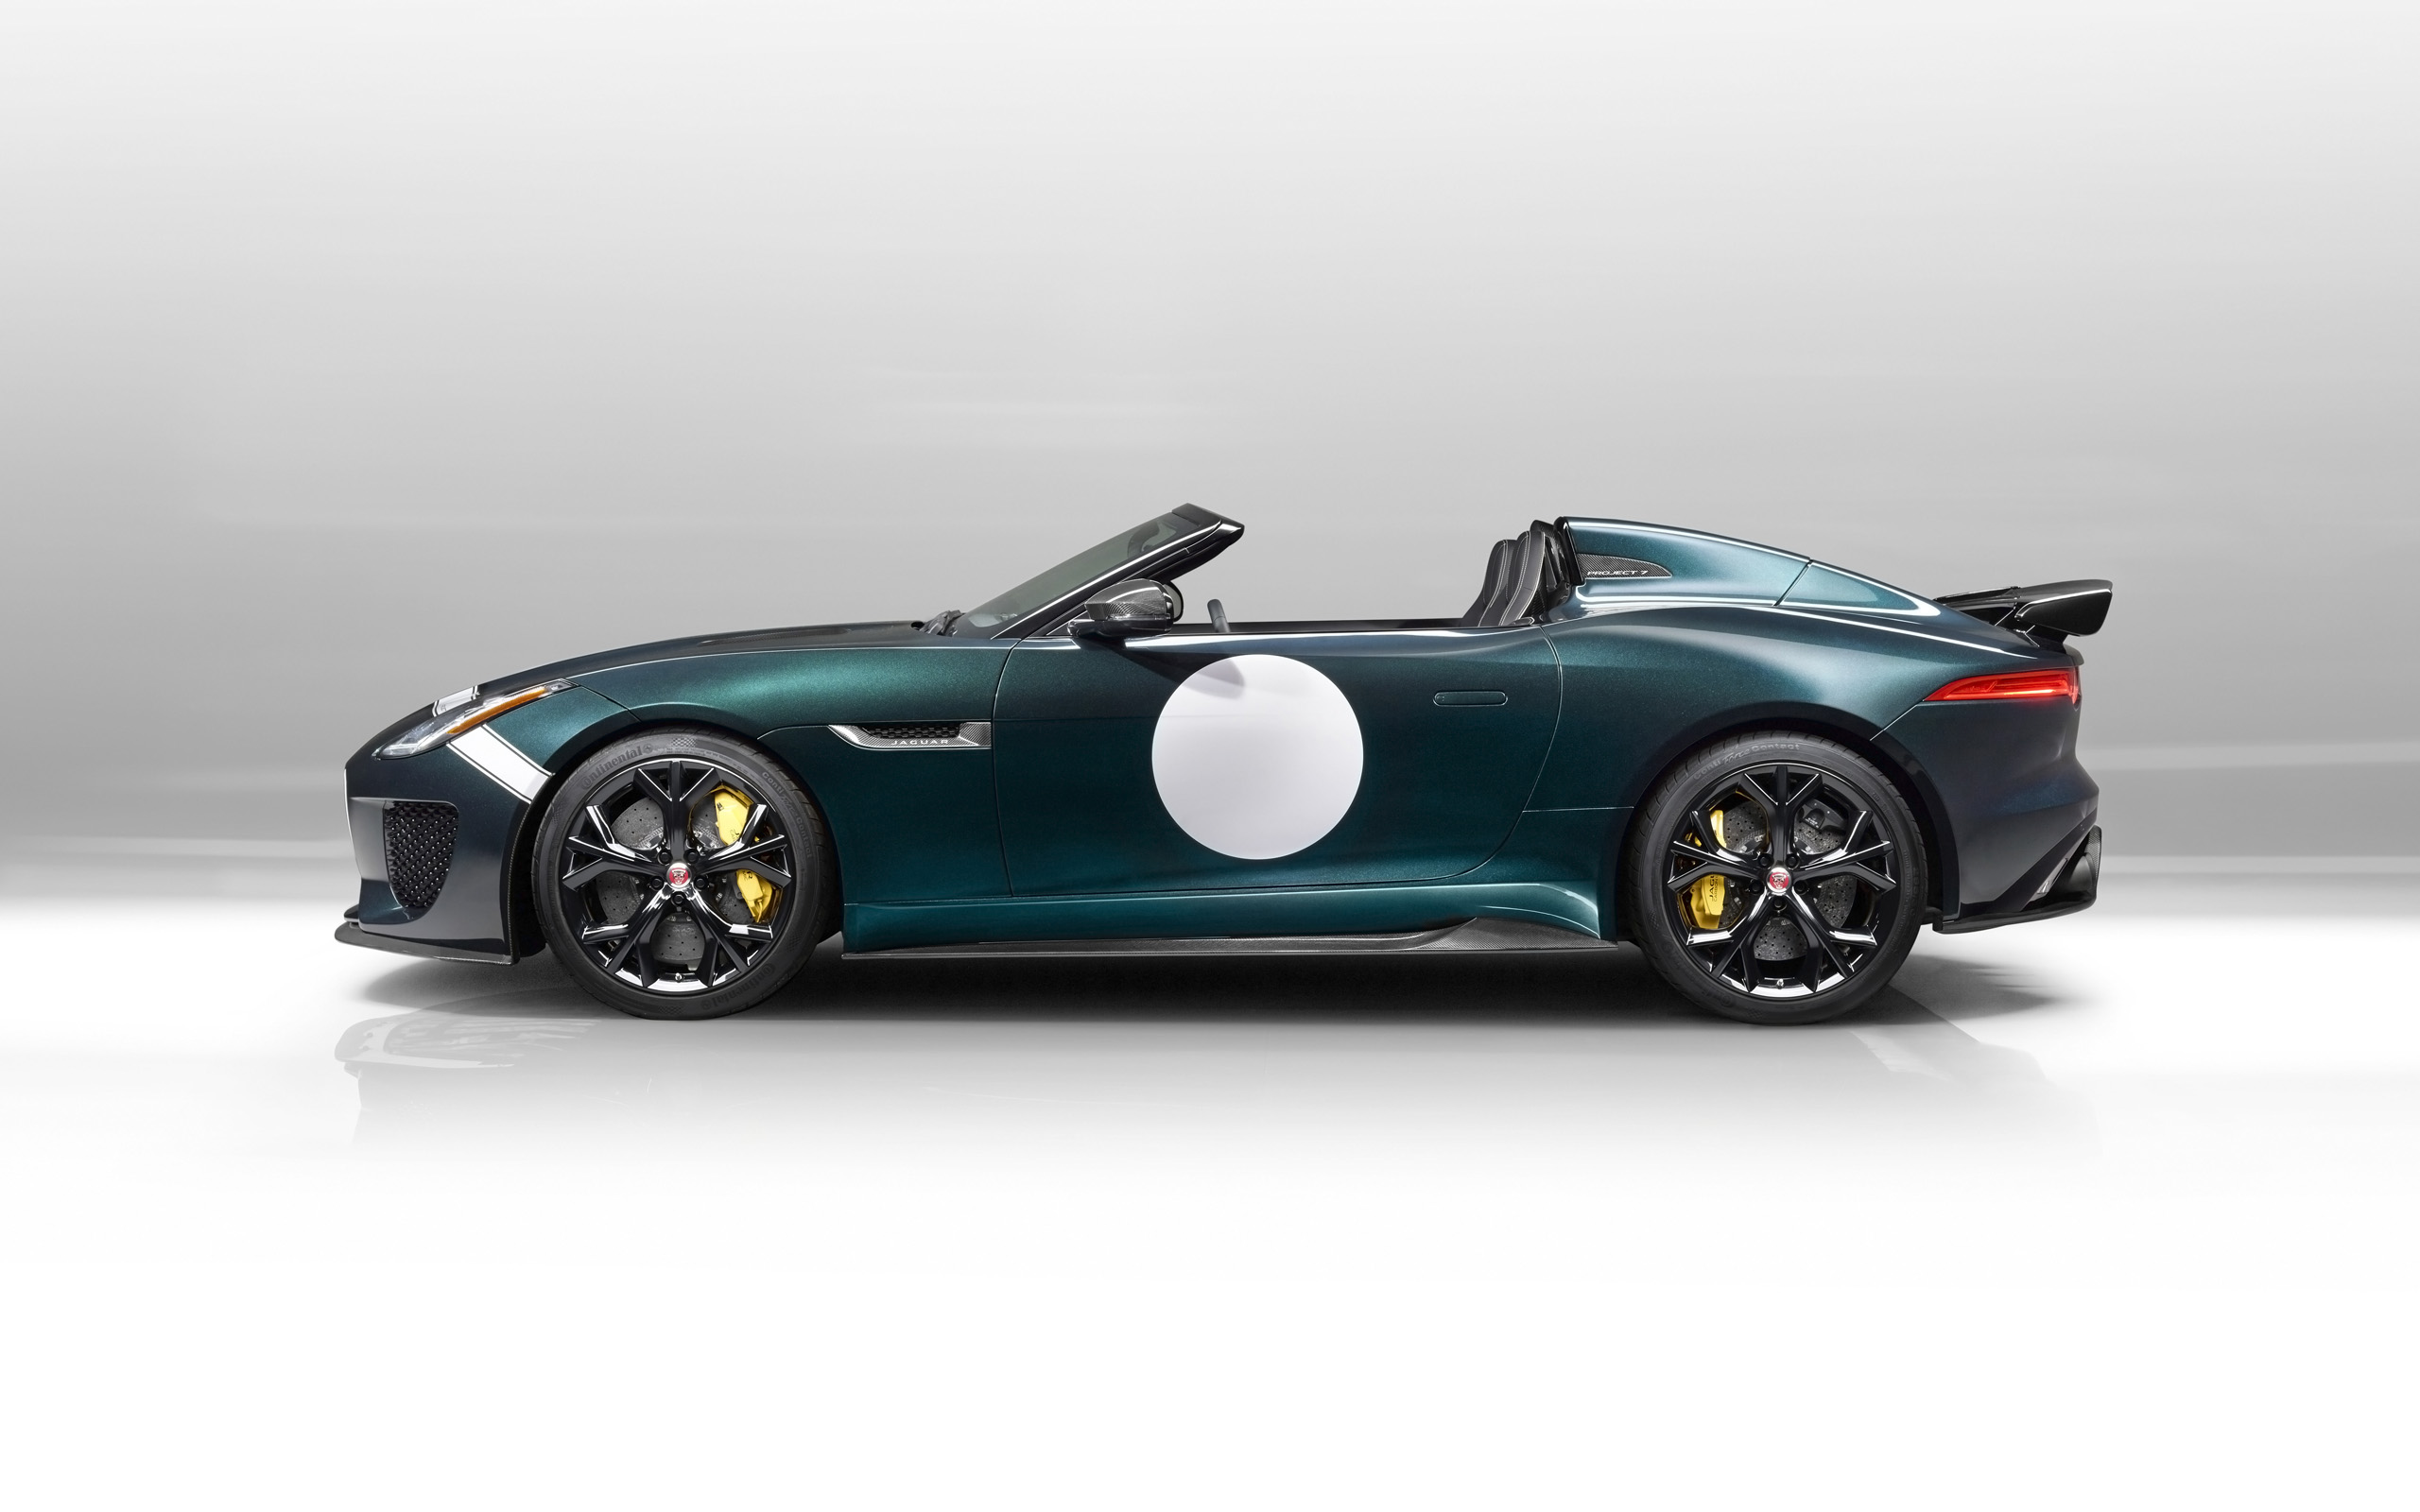 suvfuly type coupe car jaguar r f imgur gallery